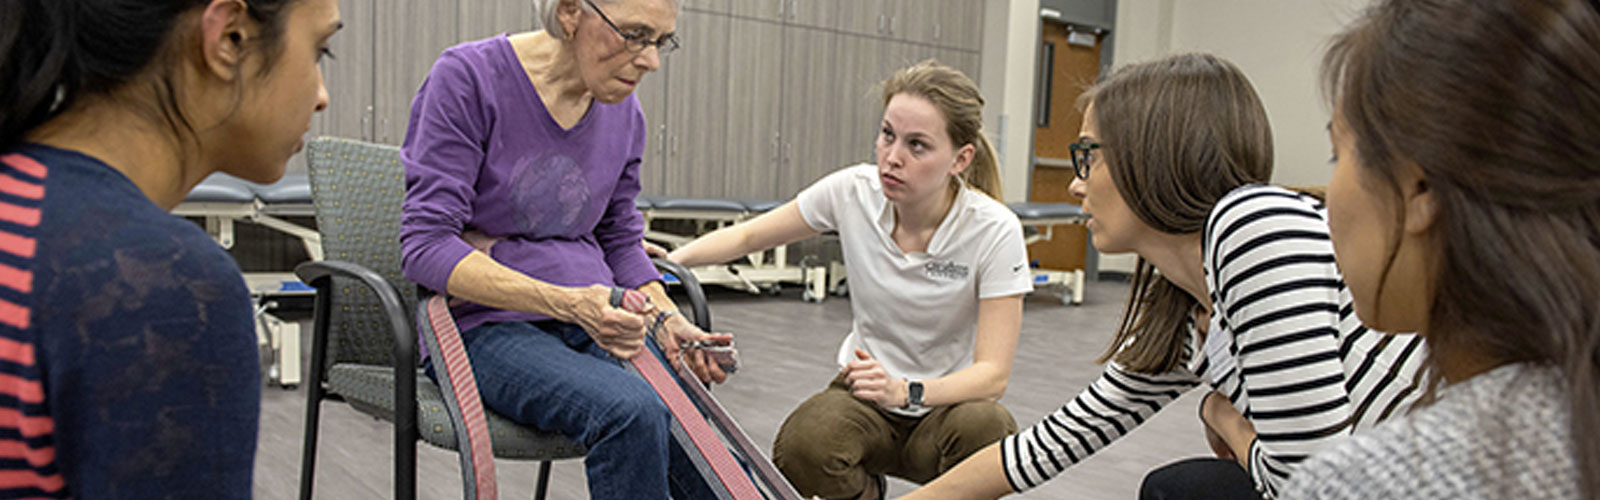 admissions information for doctor of physical therapy